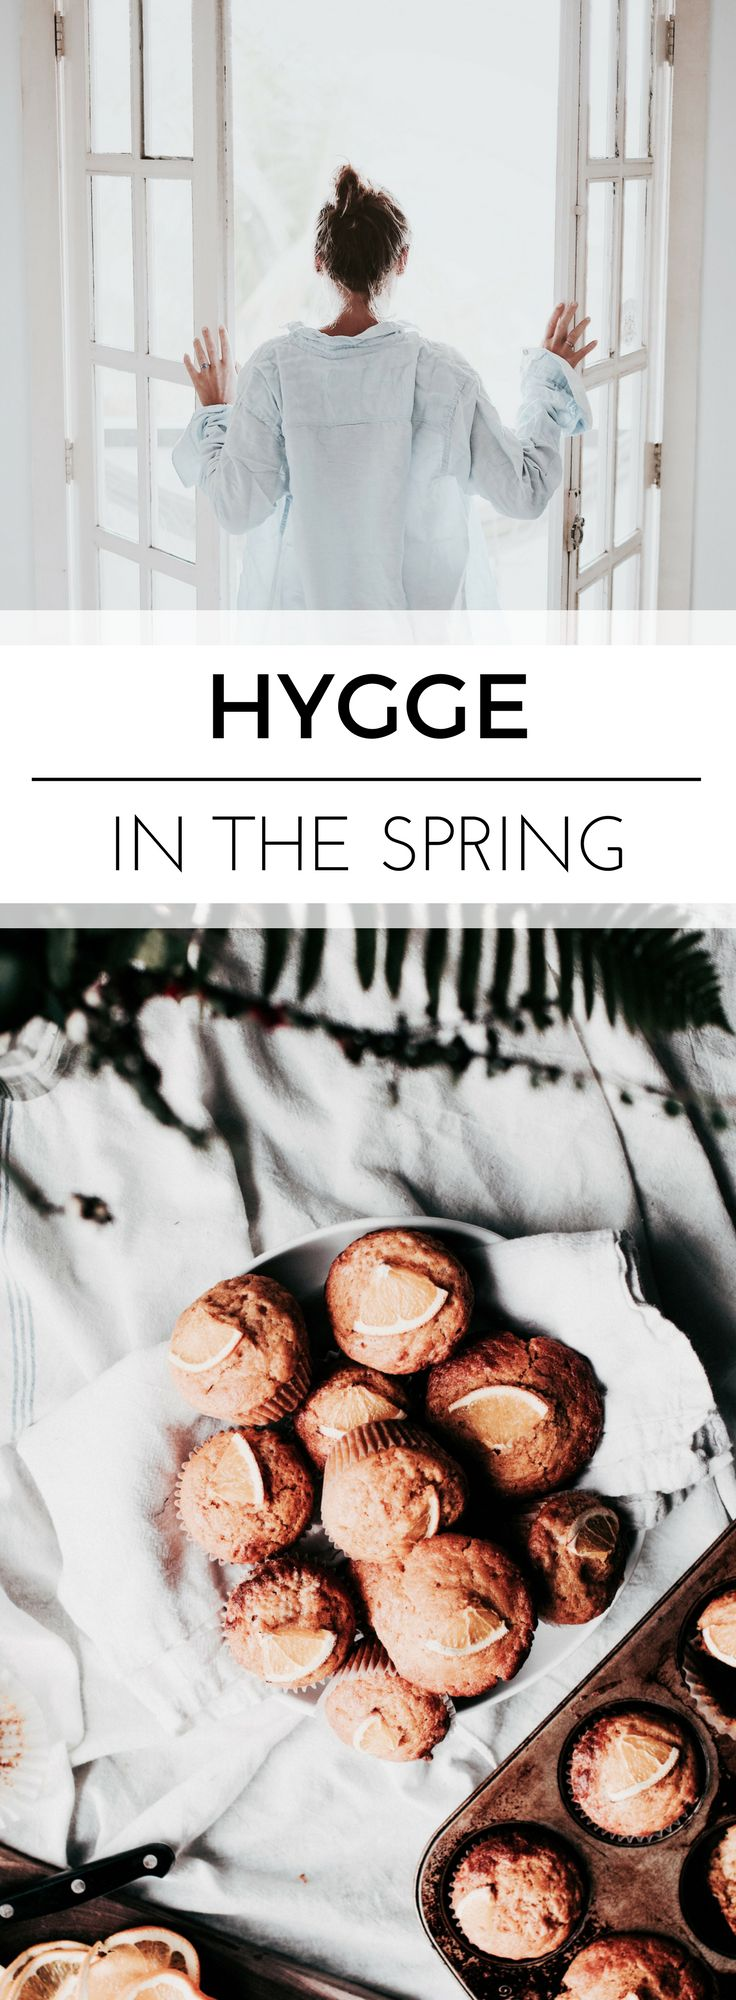 Hygge in the Spring :: Tips to keep hygge present in your home during the warmer months!